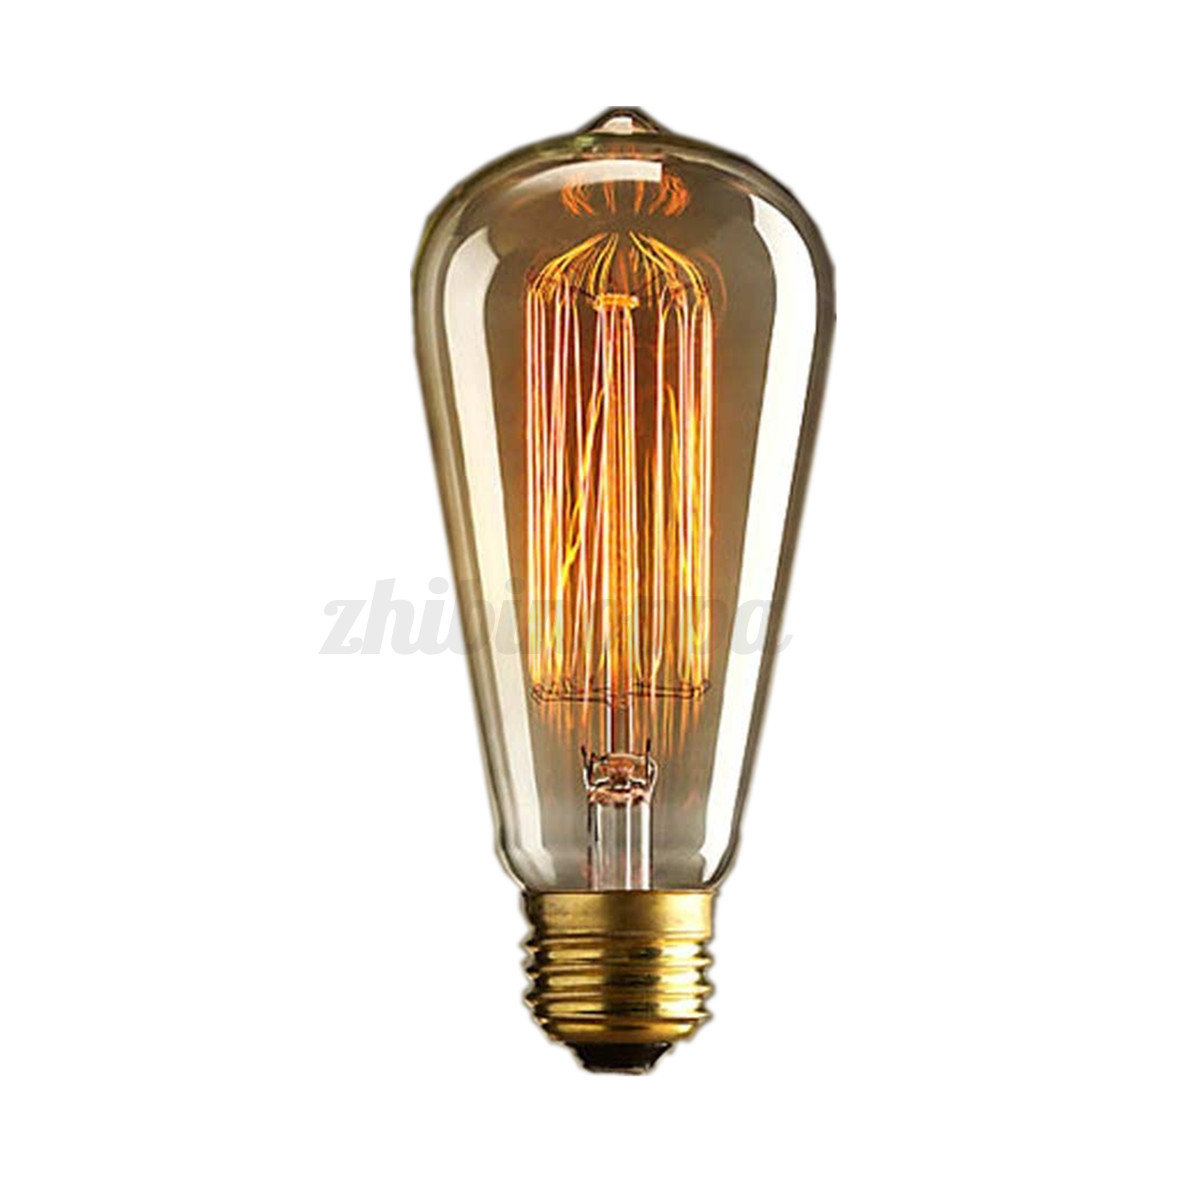 Ceiling Lamp Holder Kit To Pin On Pinterest E27 Brass Copper Holderwireceiling Base Pendant Light Without